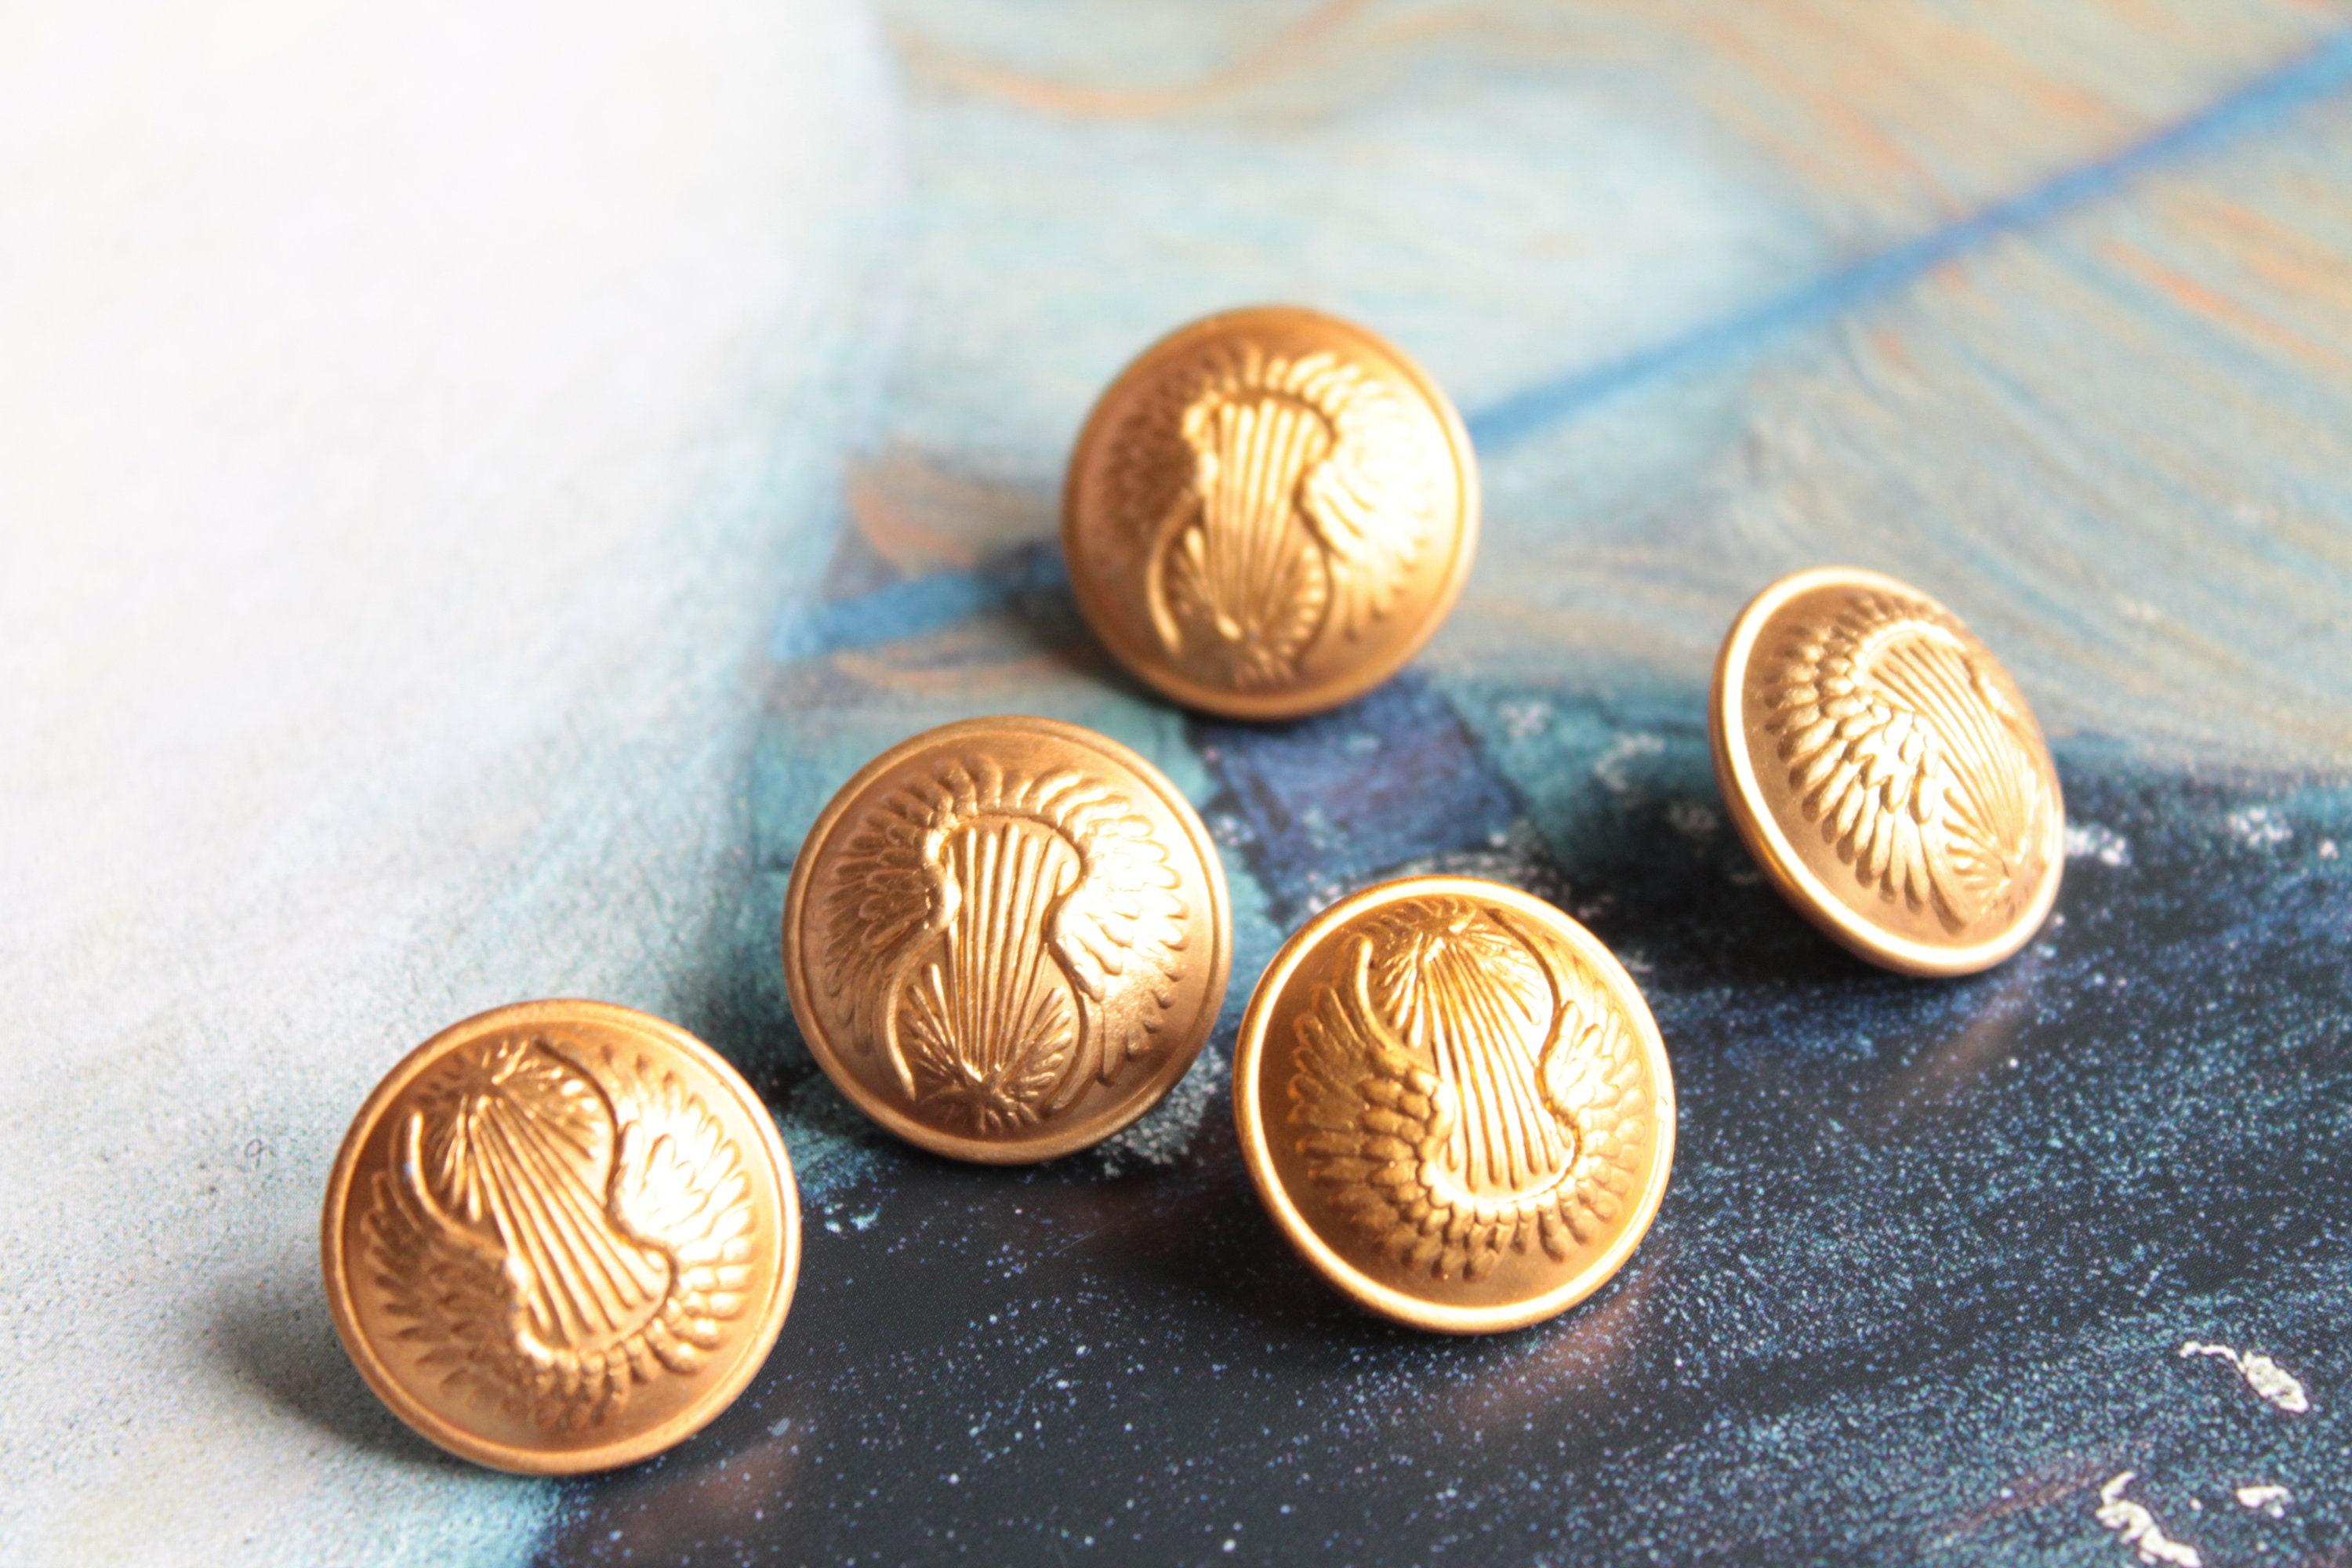 5 French military antique buttons, G D Paris, golden tail